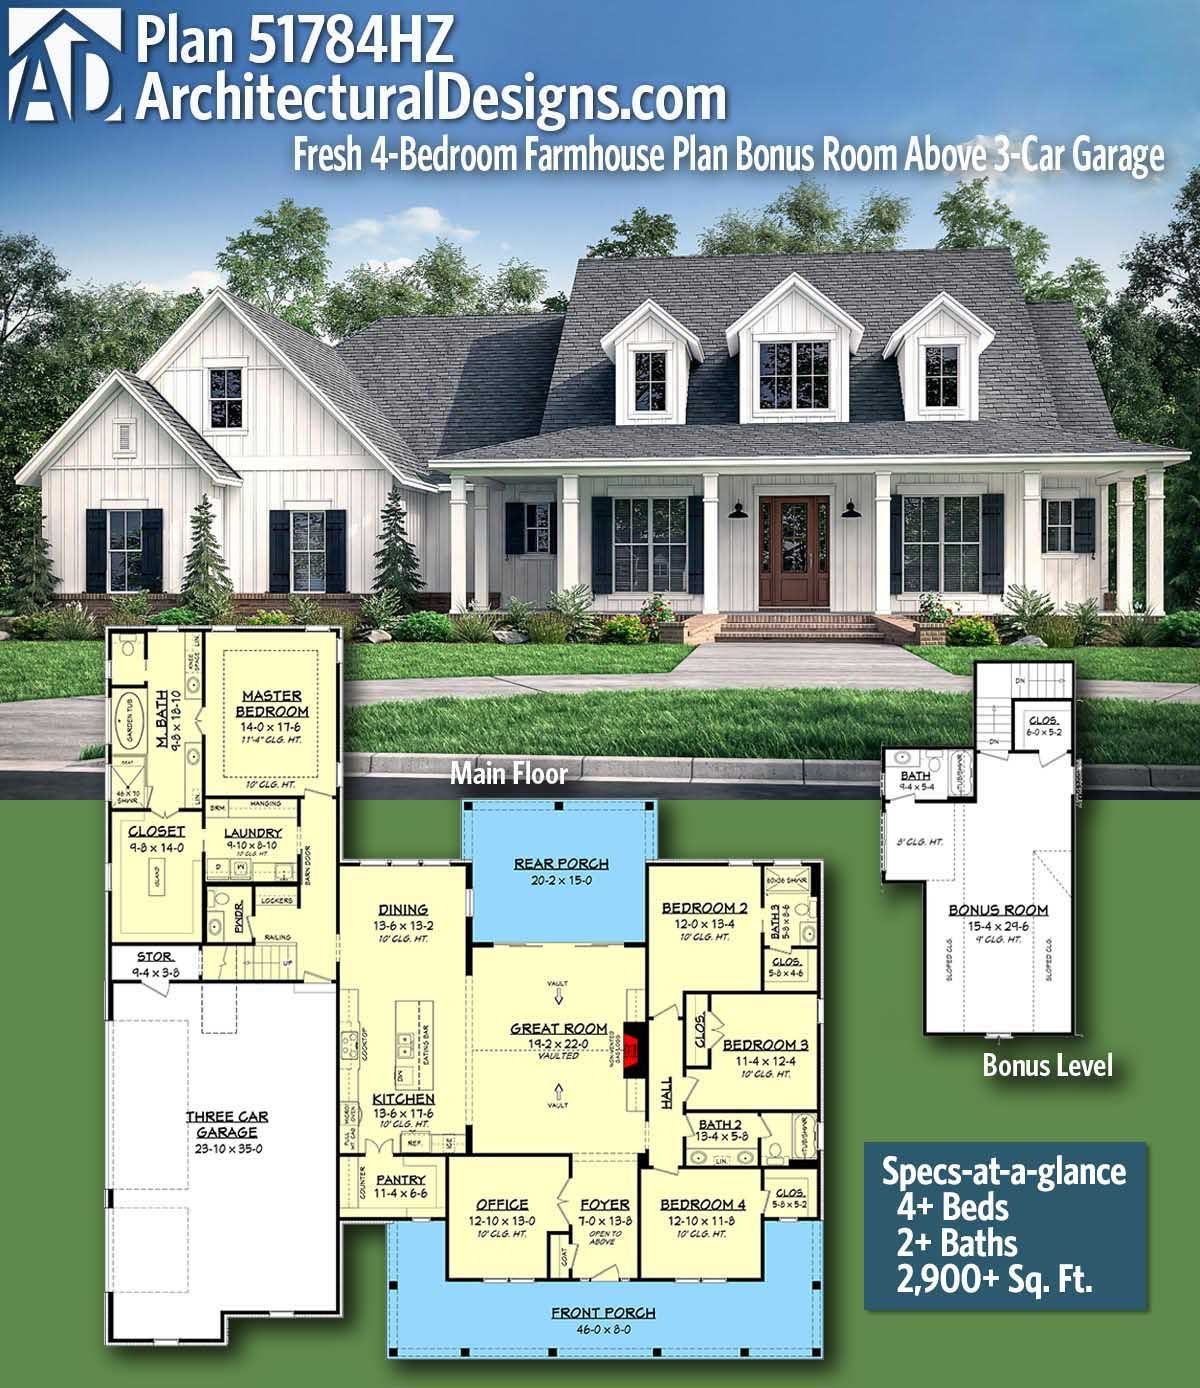 Plan 51784hz Fresh 4 Bedroom Farmhouse Plan With Bonus Room Above 3 Car Garage Farmhouse Plans House Plans Farmhouse Dream House Plans